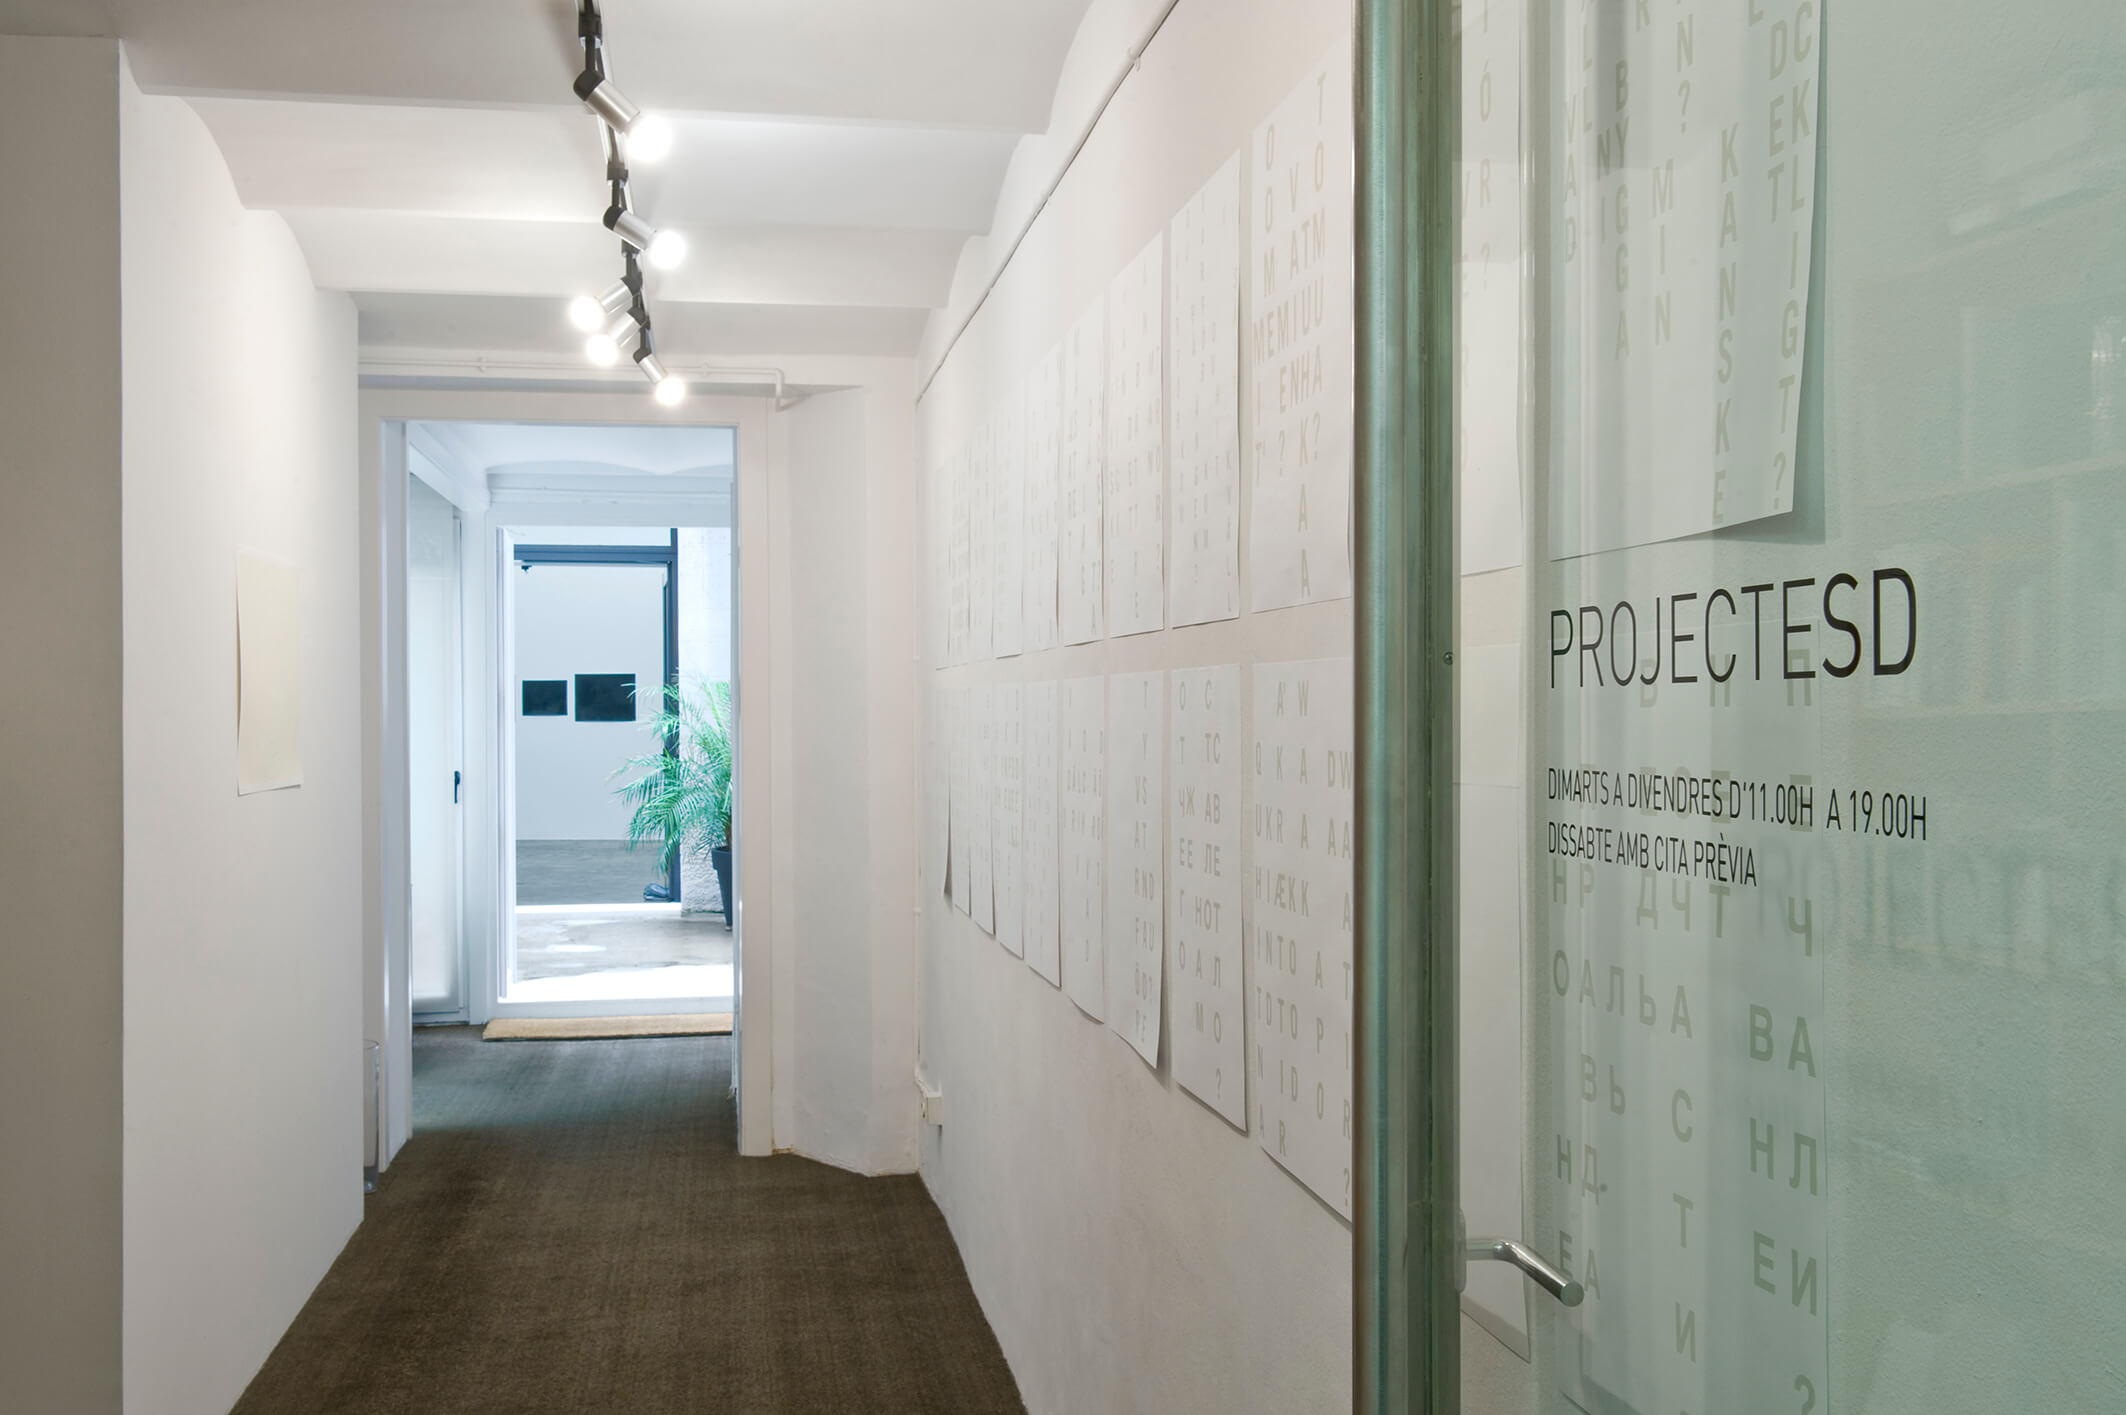 Installation view: La idea del Norte, ProjecteSD, Barcelona, 2014 | La idea del Norte | ProjecteSD